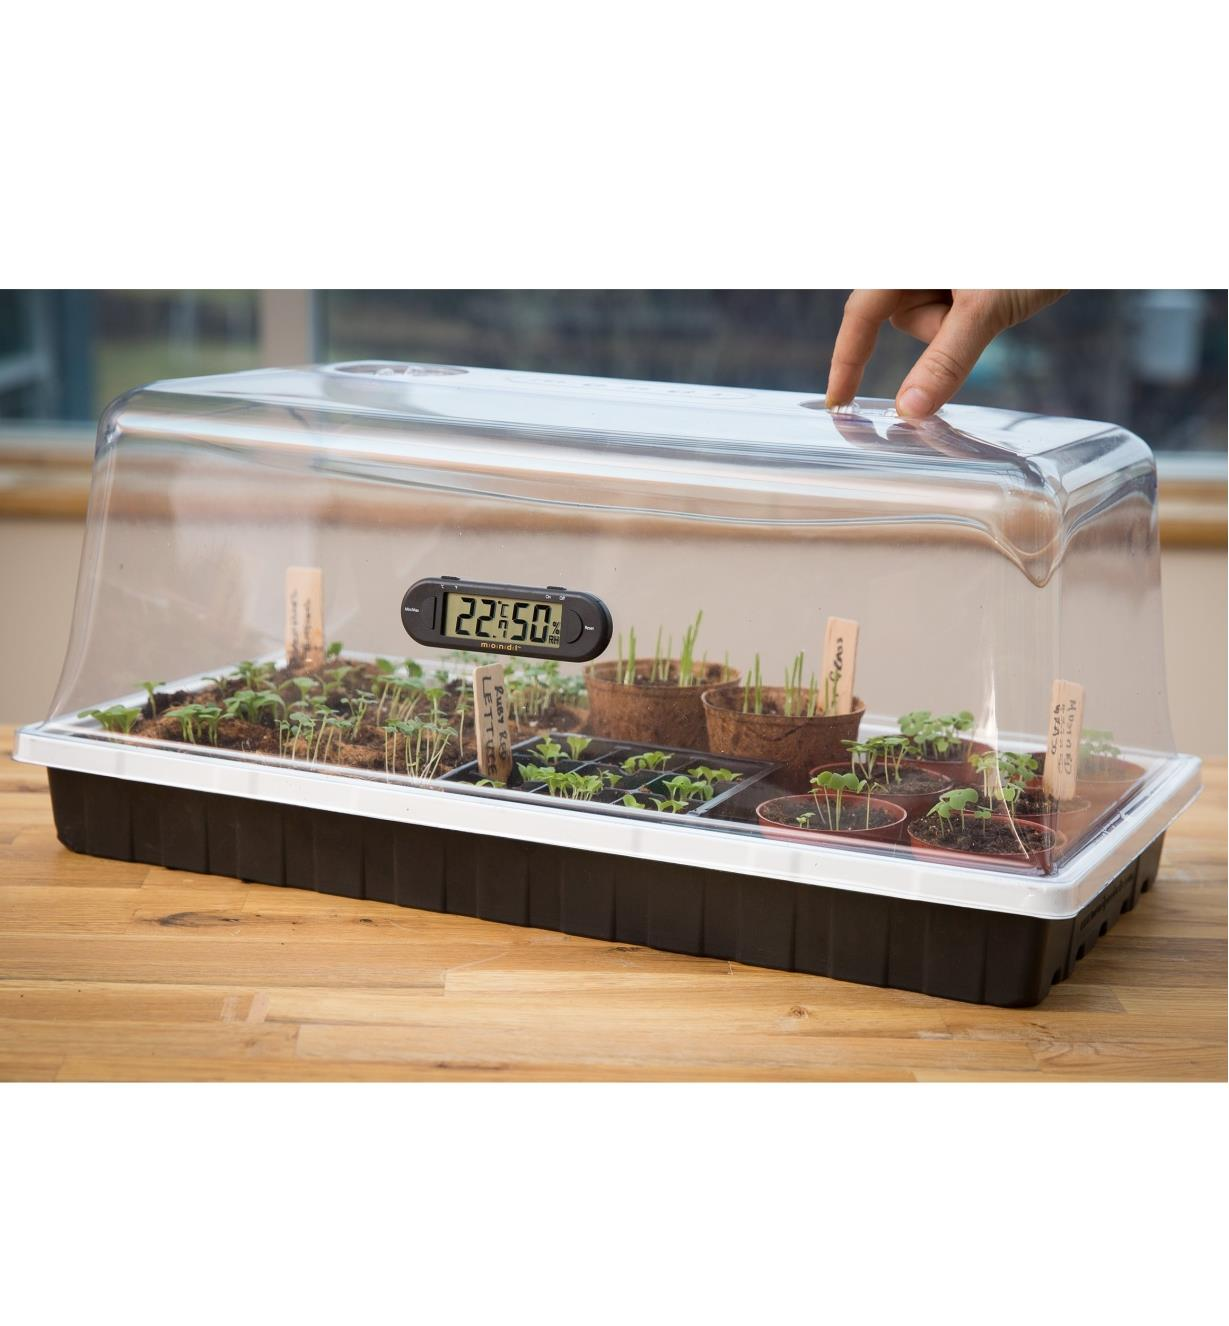 Dome and tray shown with plants and mini hygrometer/thermometer, sold separately.